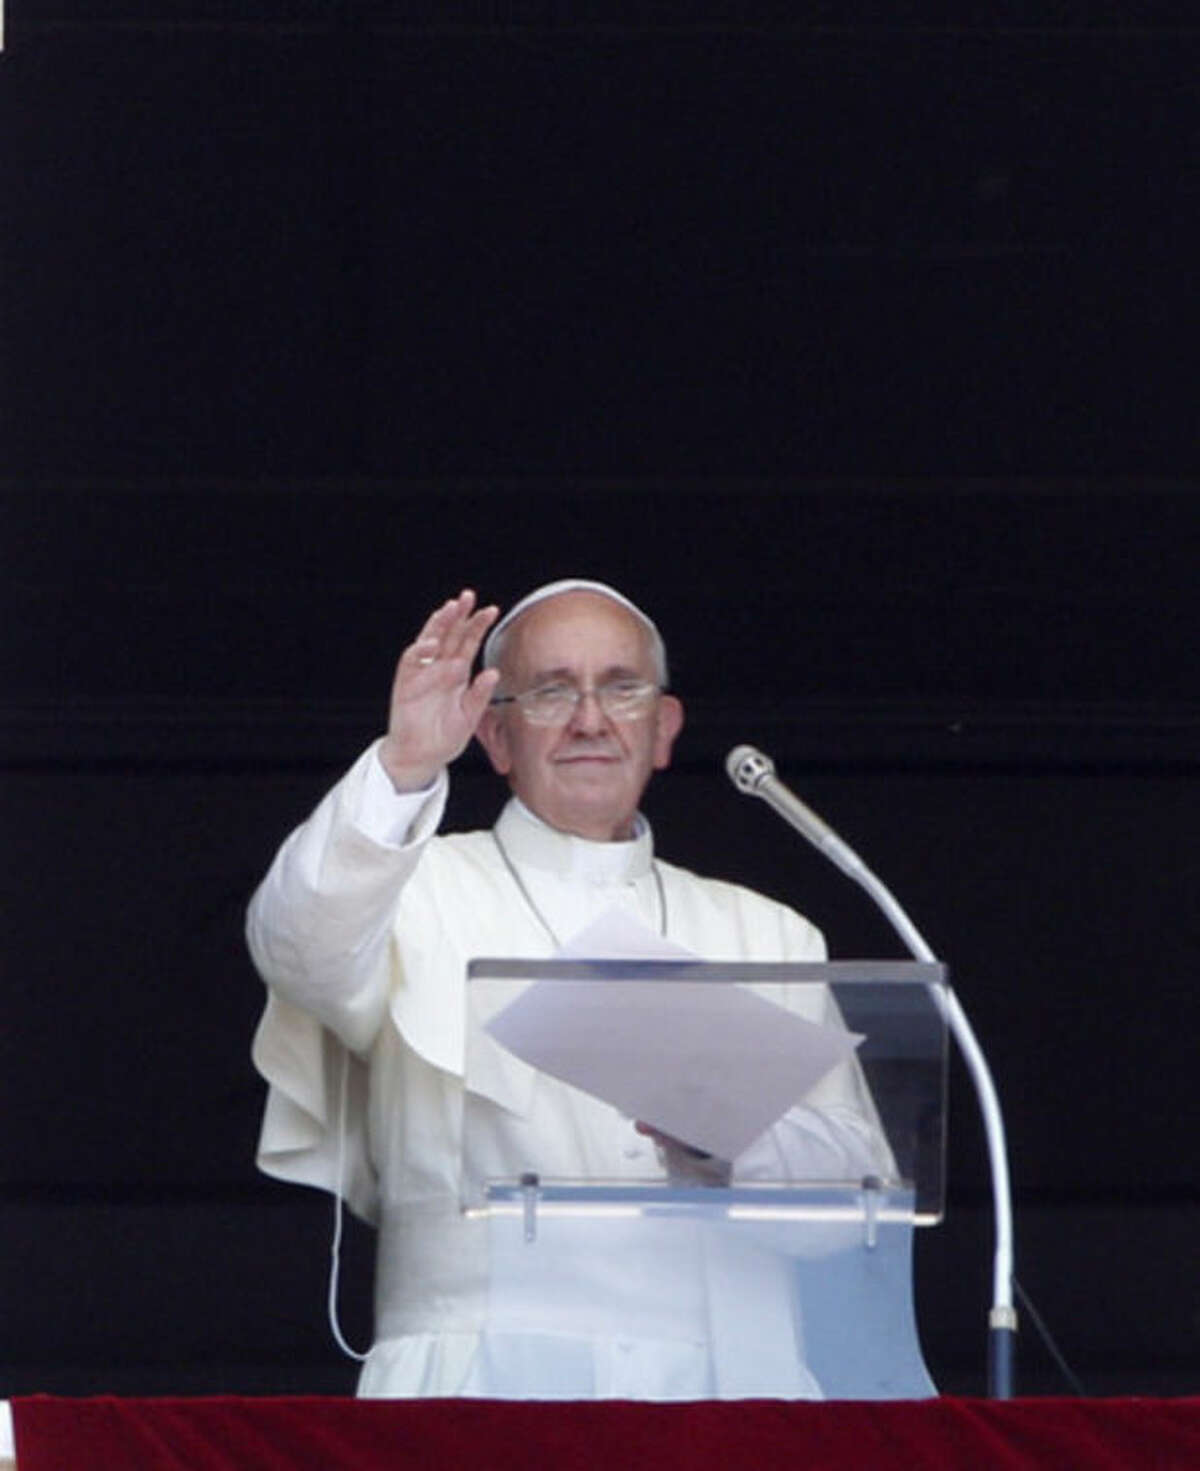 Pope Francis waves to faithful during the Angelus prayer from his studio window overlooking St. Peter's Square at the Vatican, Sunday, July 7, 2013. (AP Photo/Riccardo De Luca)